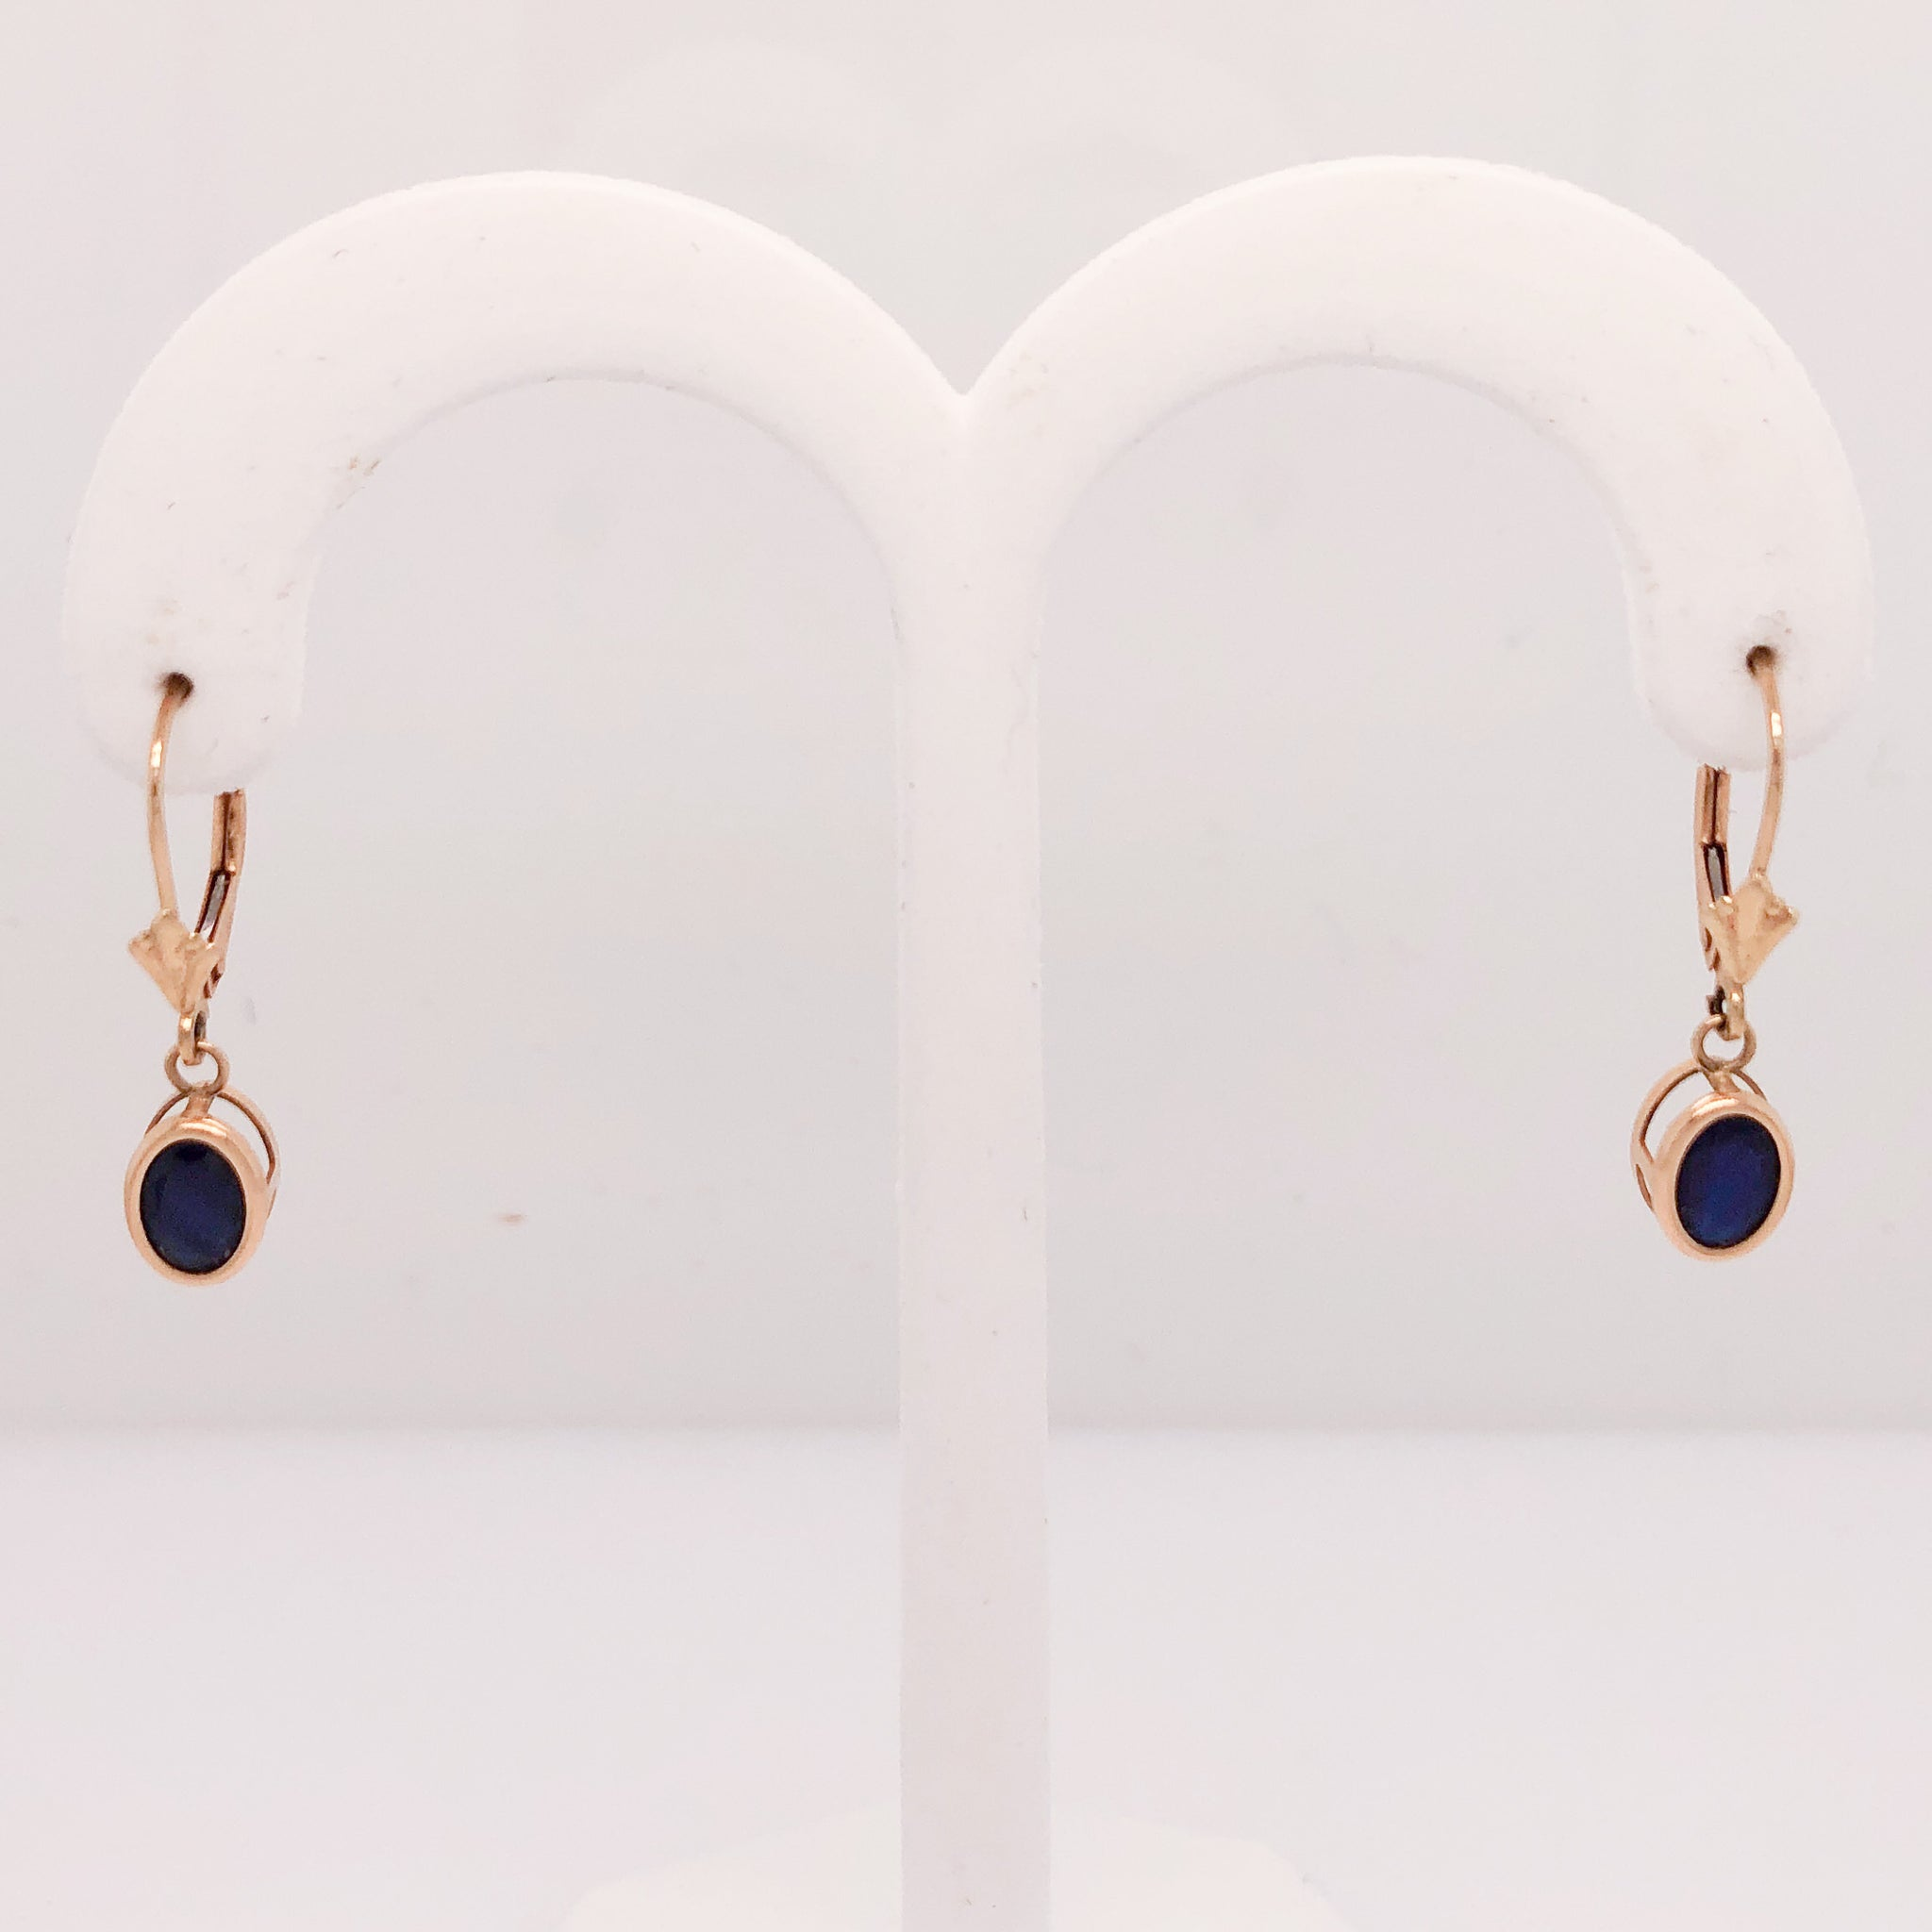 14K Yellow Gold Lever Back Earrings with Oval Bezel Set Blue Stones (Believed to be Sapphires)  CE0118